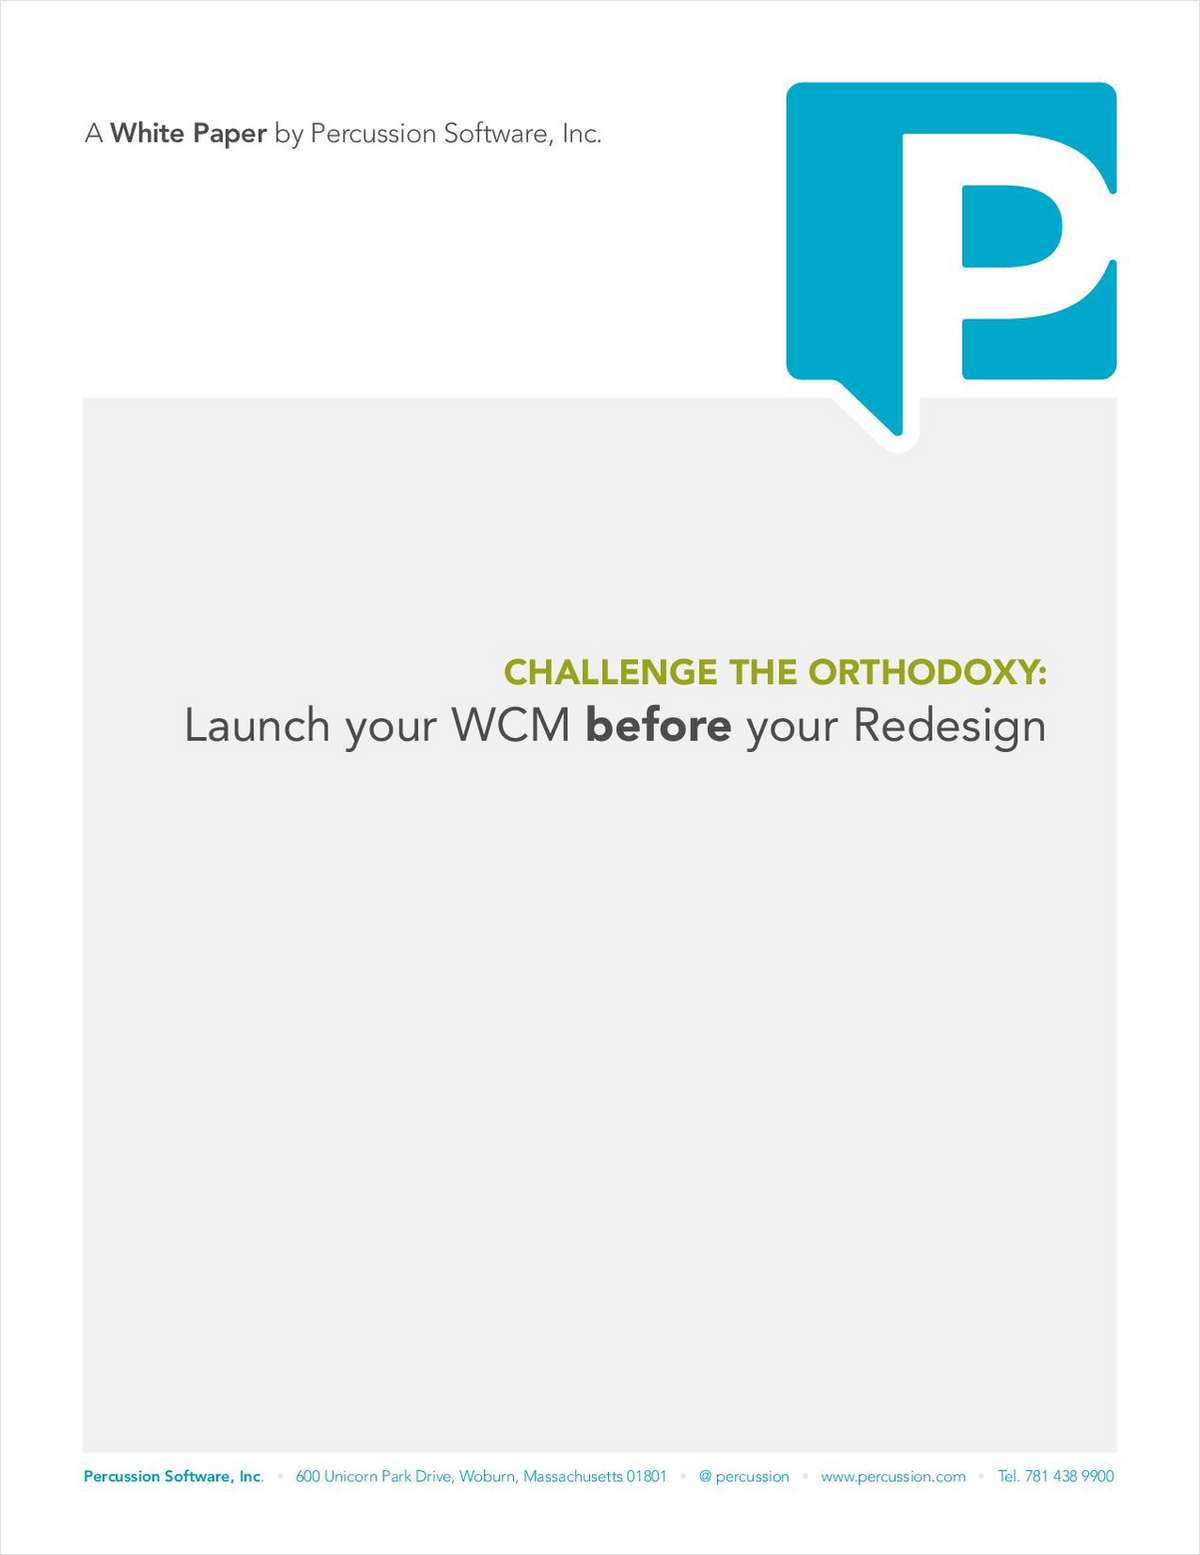 Challenge the Orthodoxy: Launch Your WCM before Your Redesign